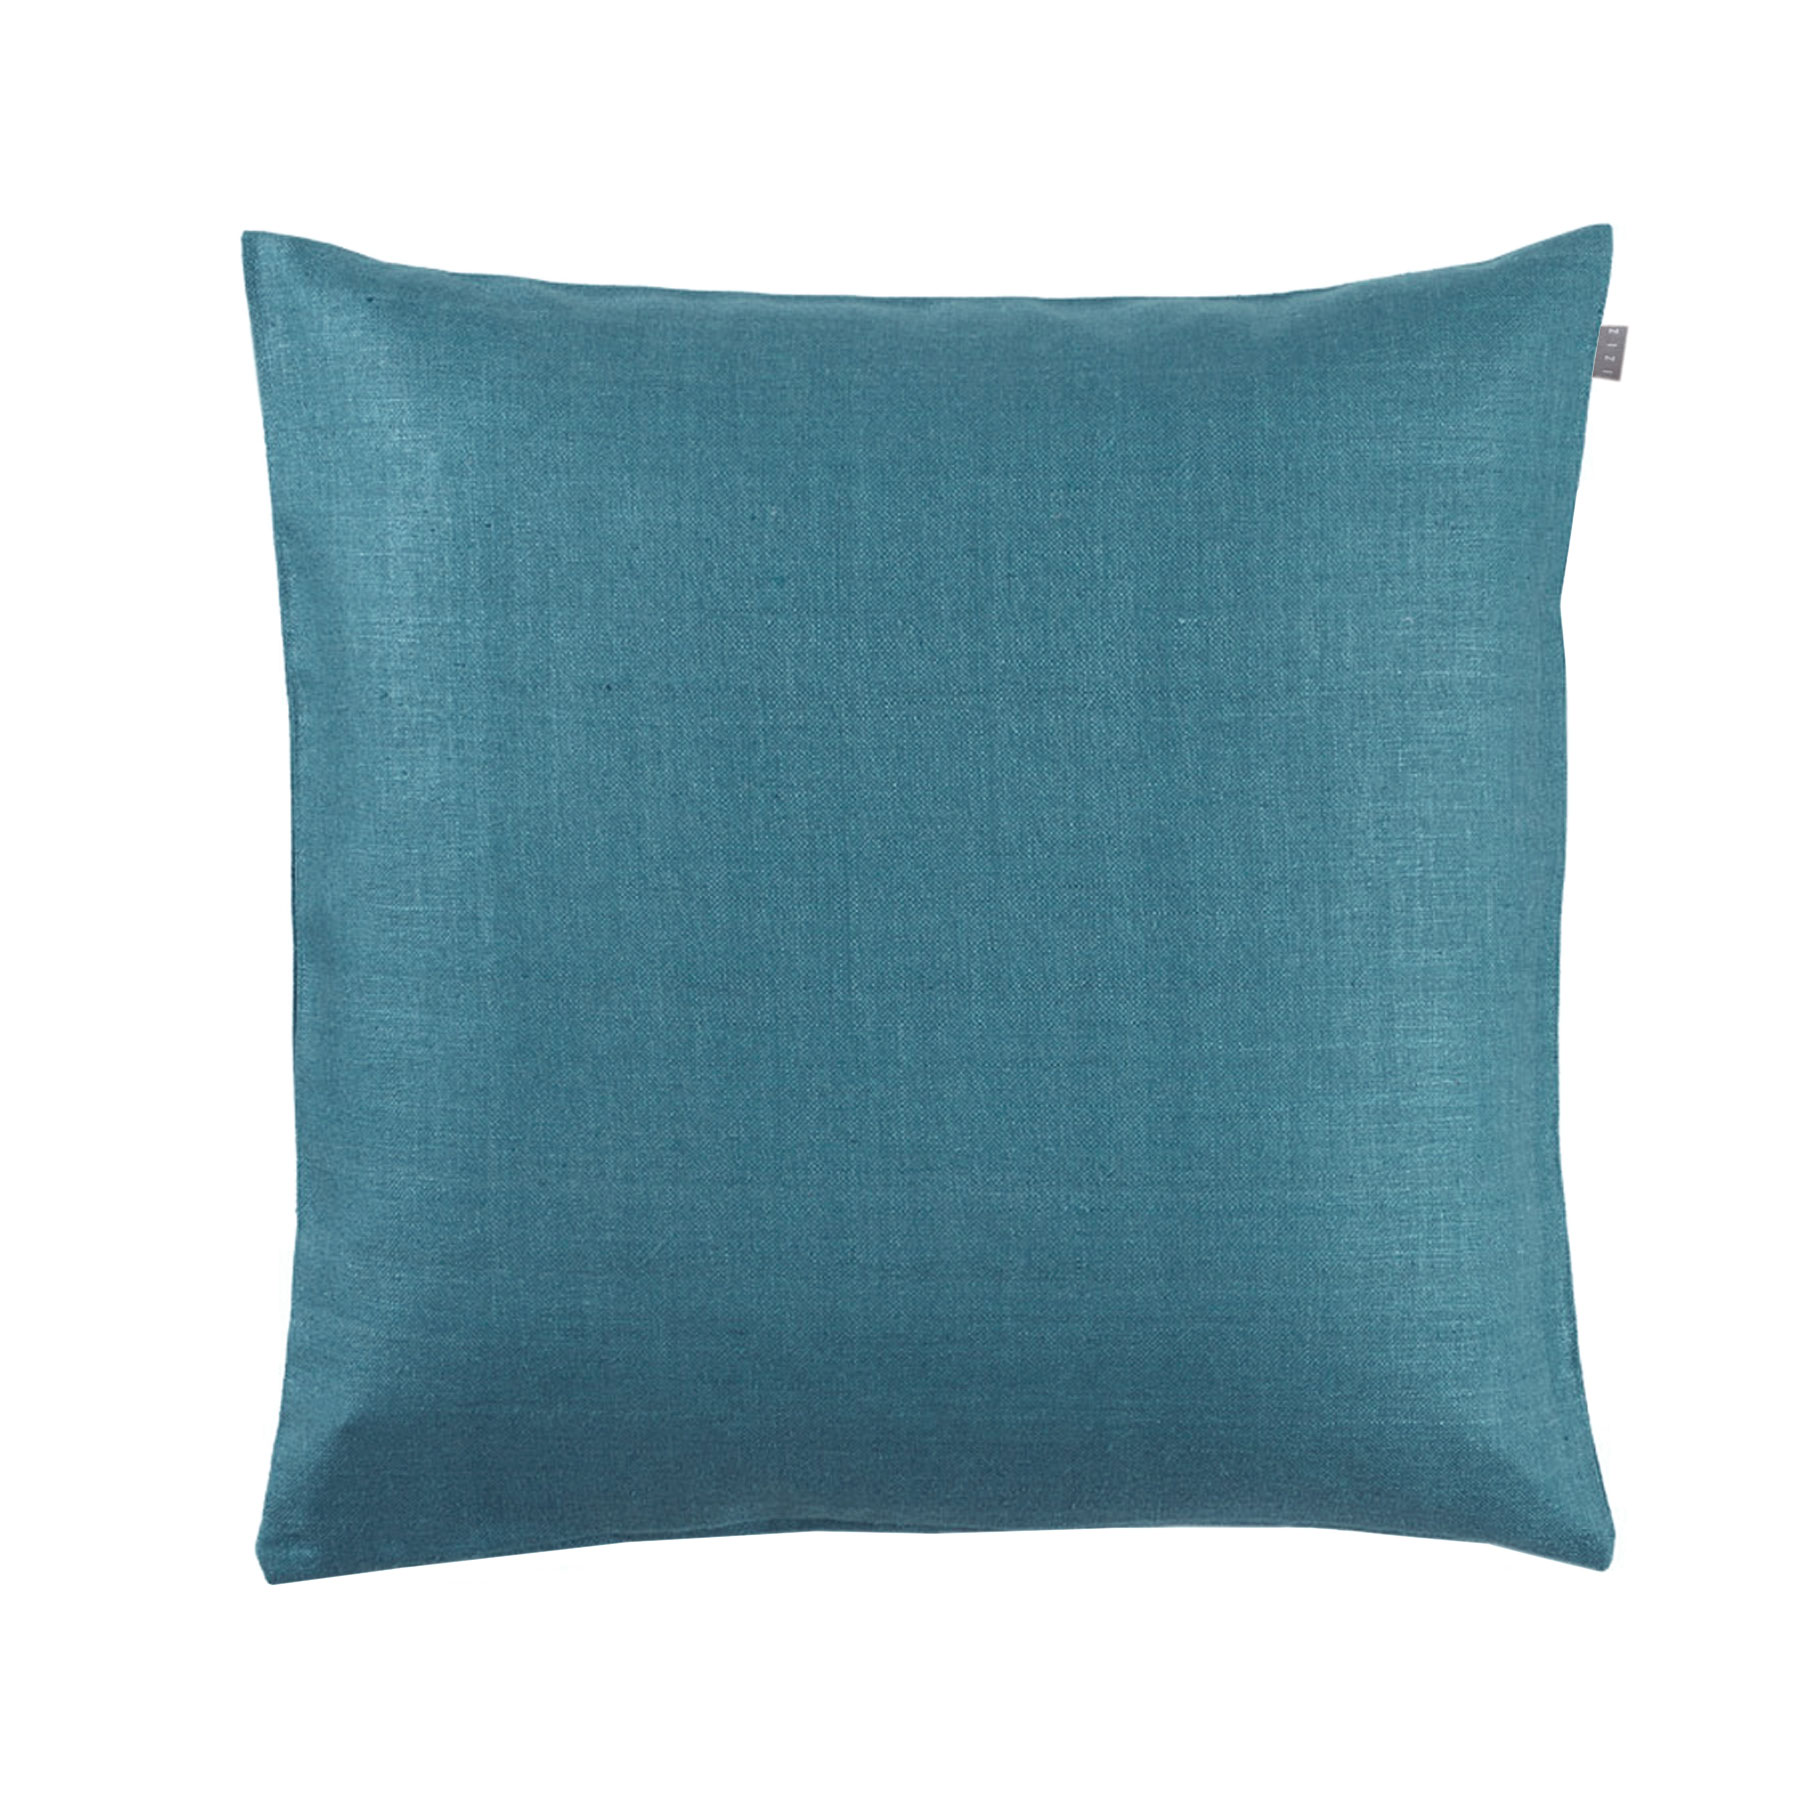 CUSHION COVER PLAIN <br />niagara blue